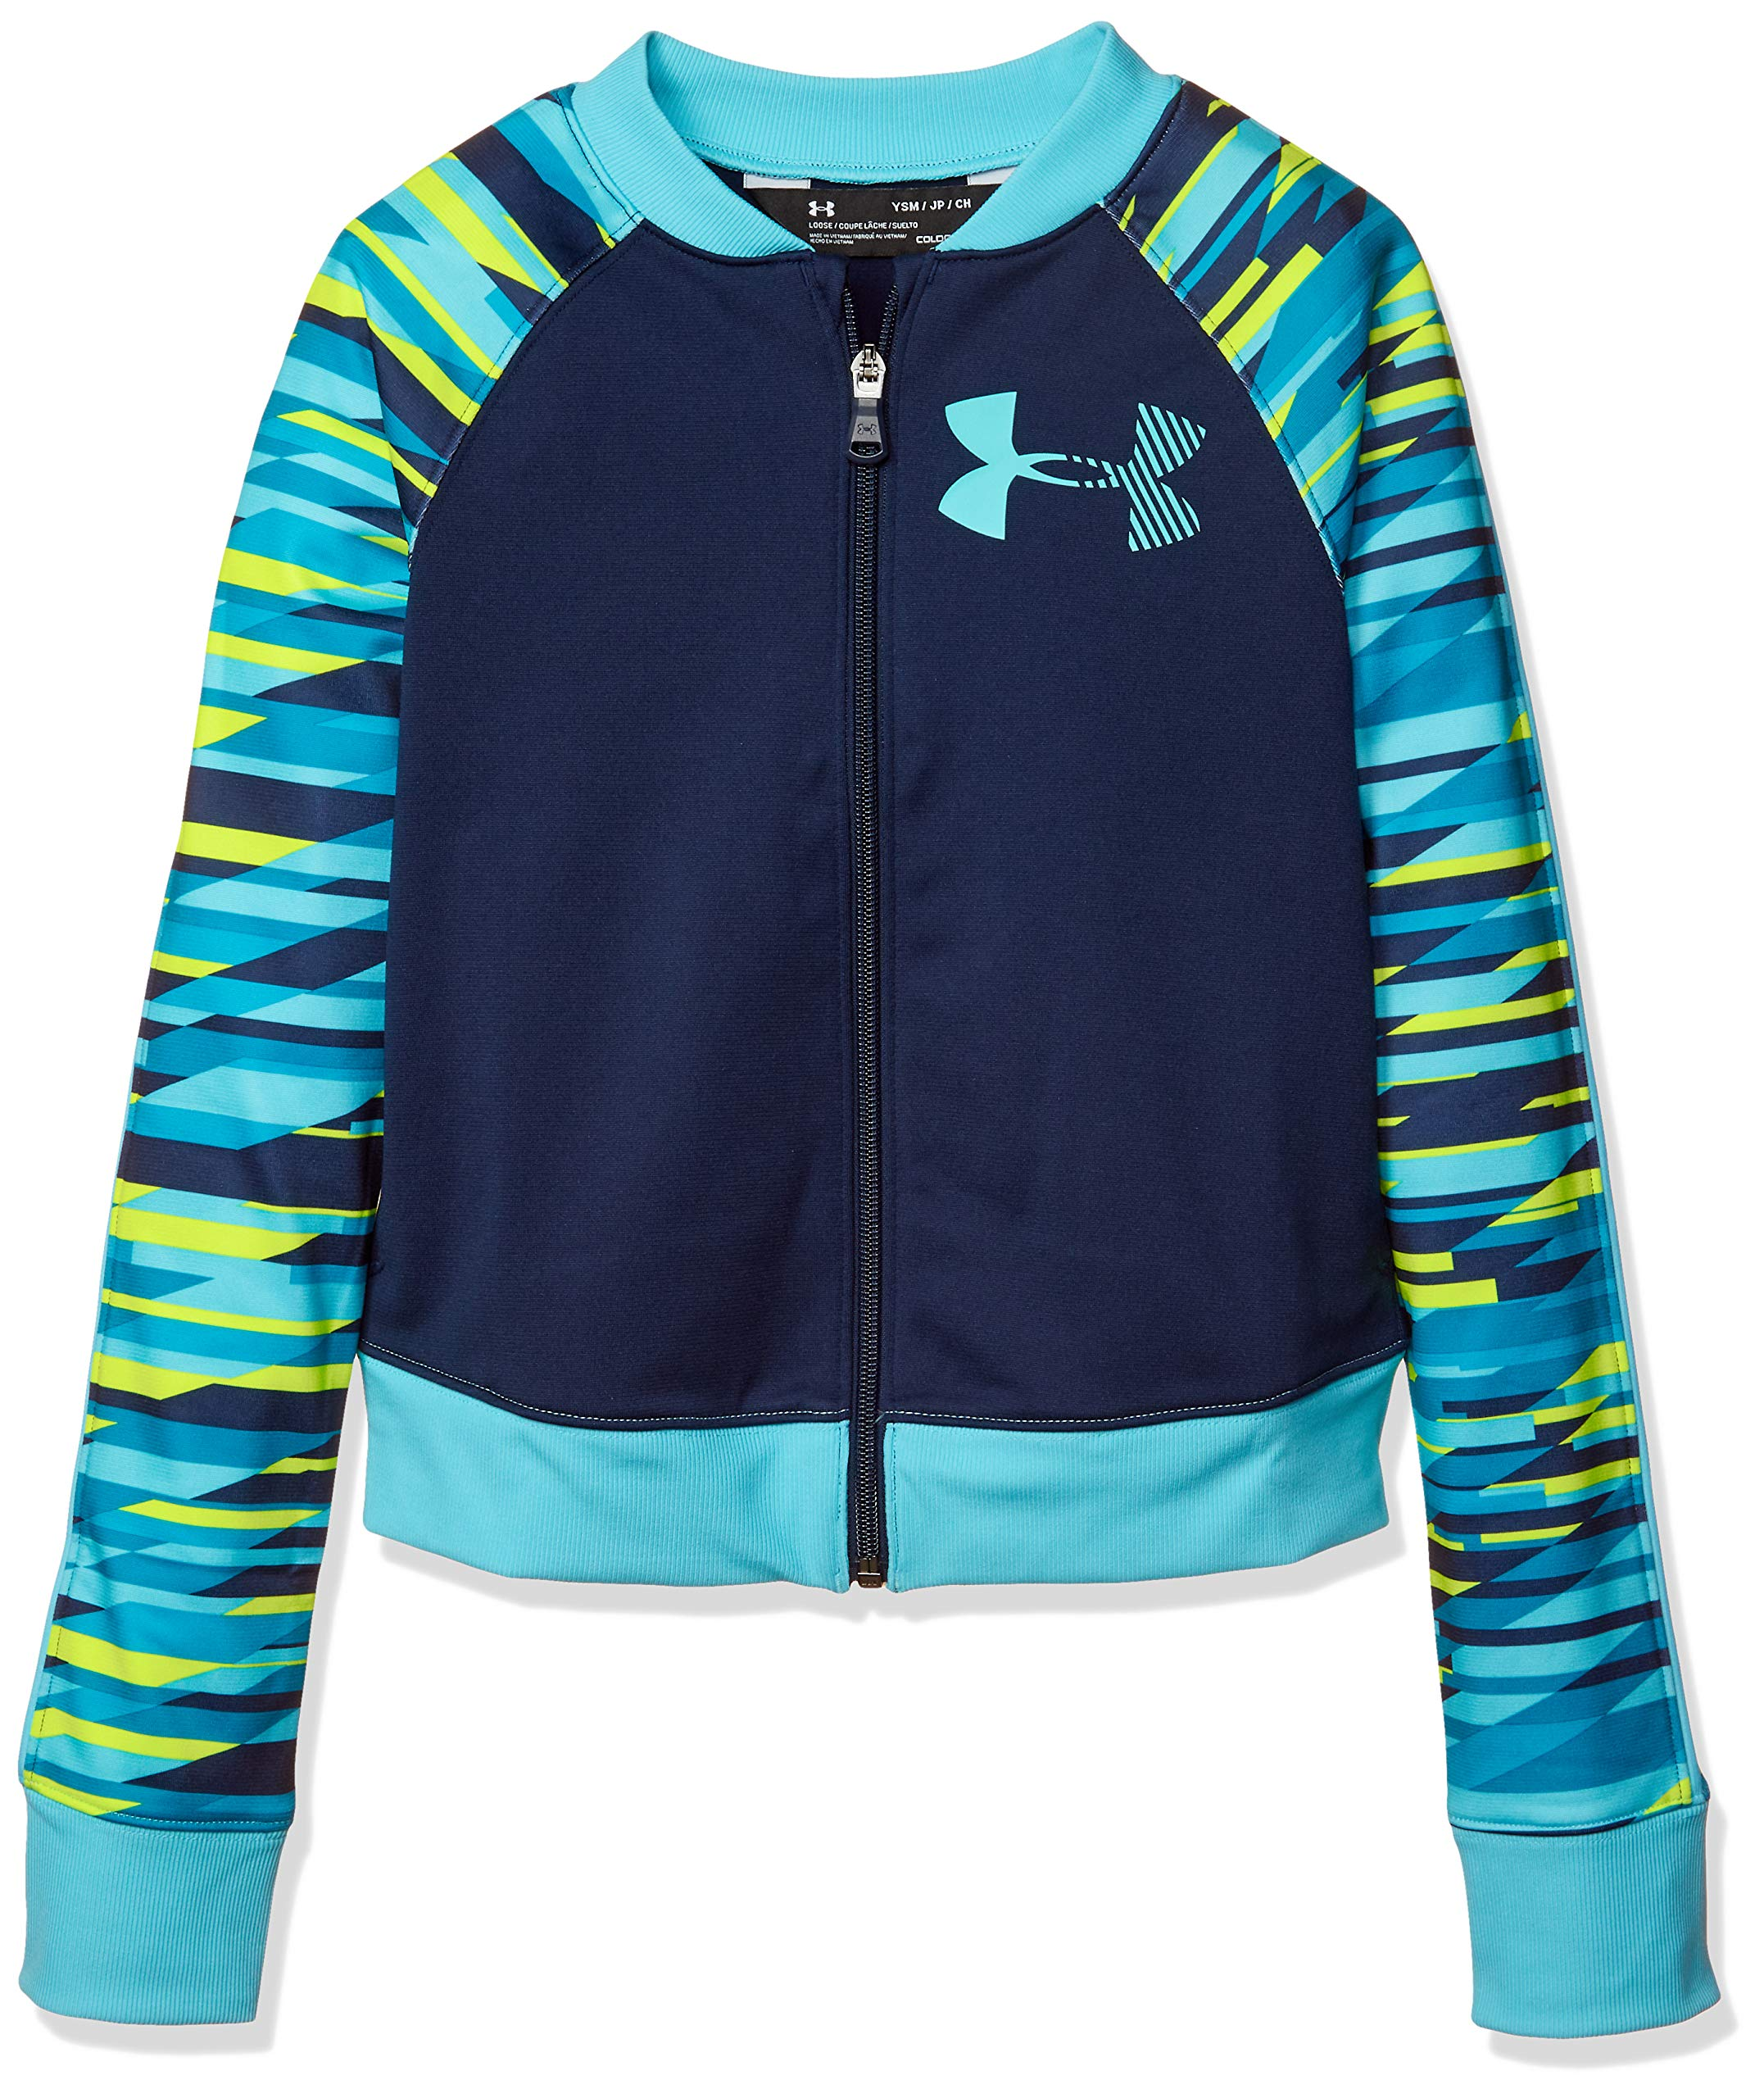 Under Armour Girls' Graphic Track Jacket, Academy (408)/Venetian Blue, Youth X-Small by Under Armour